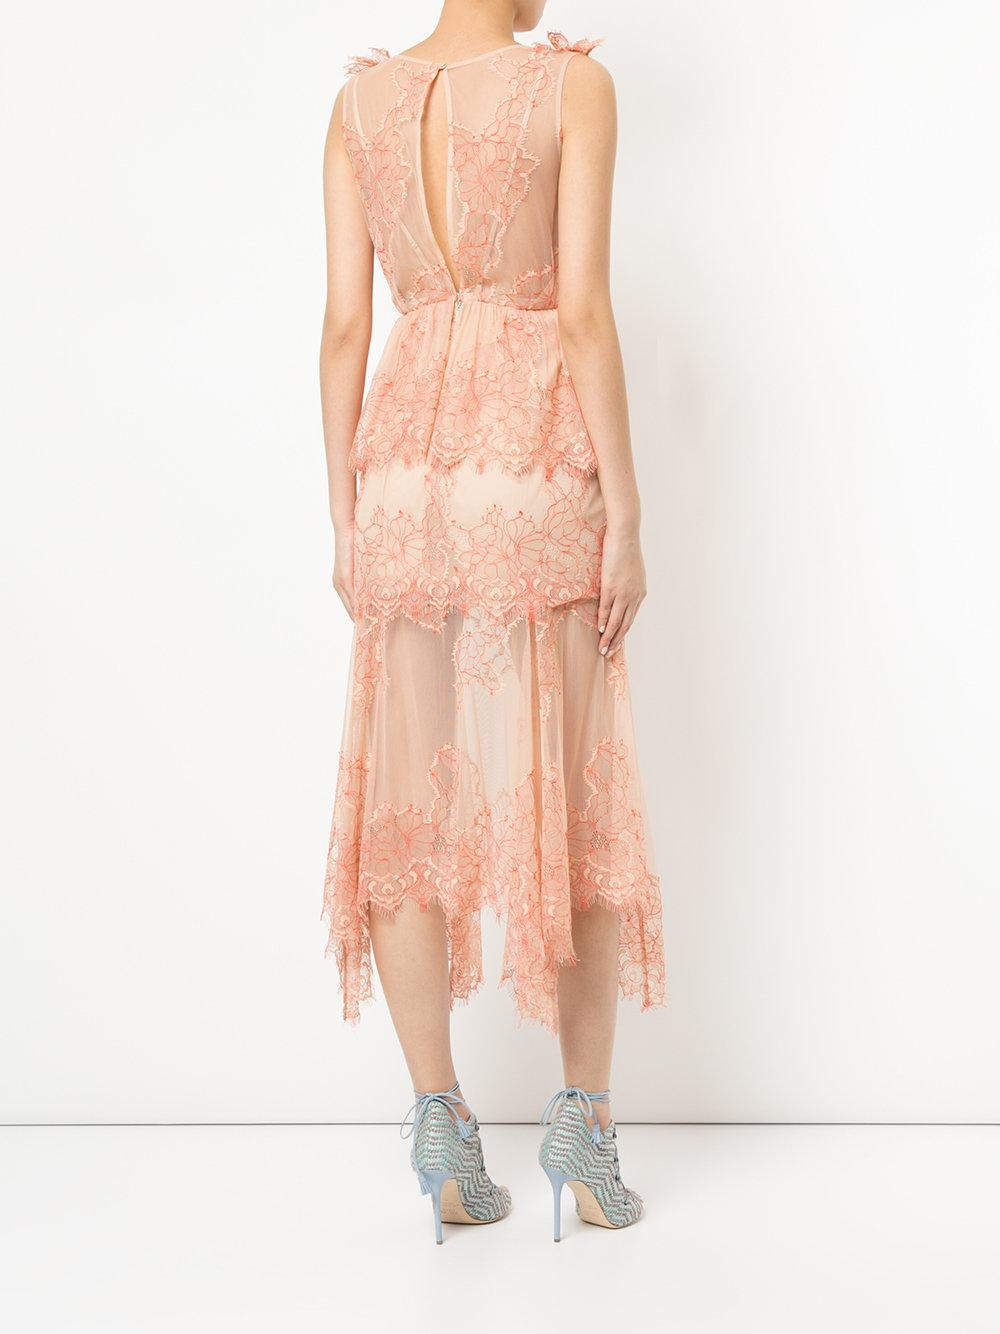 Clementine gown - Nude & Neutrals Alice McCall M24KLV18